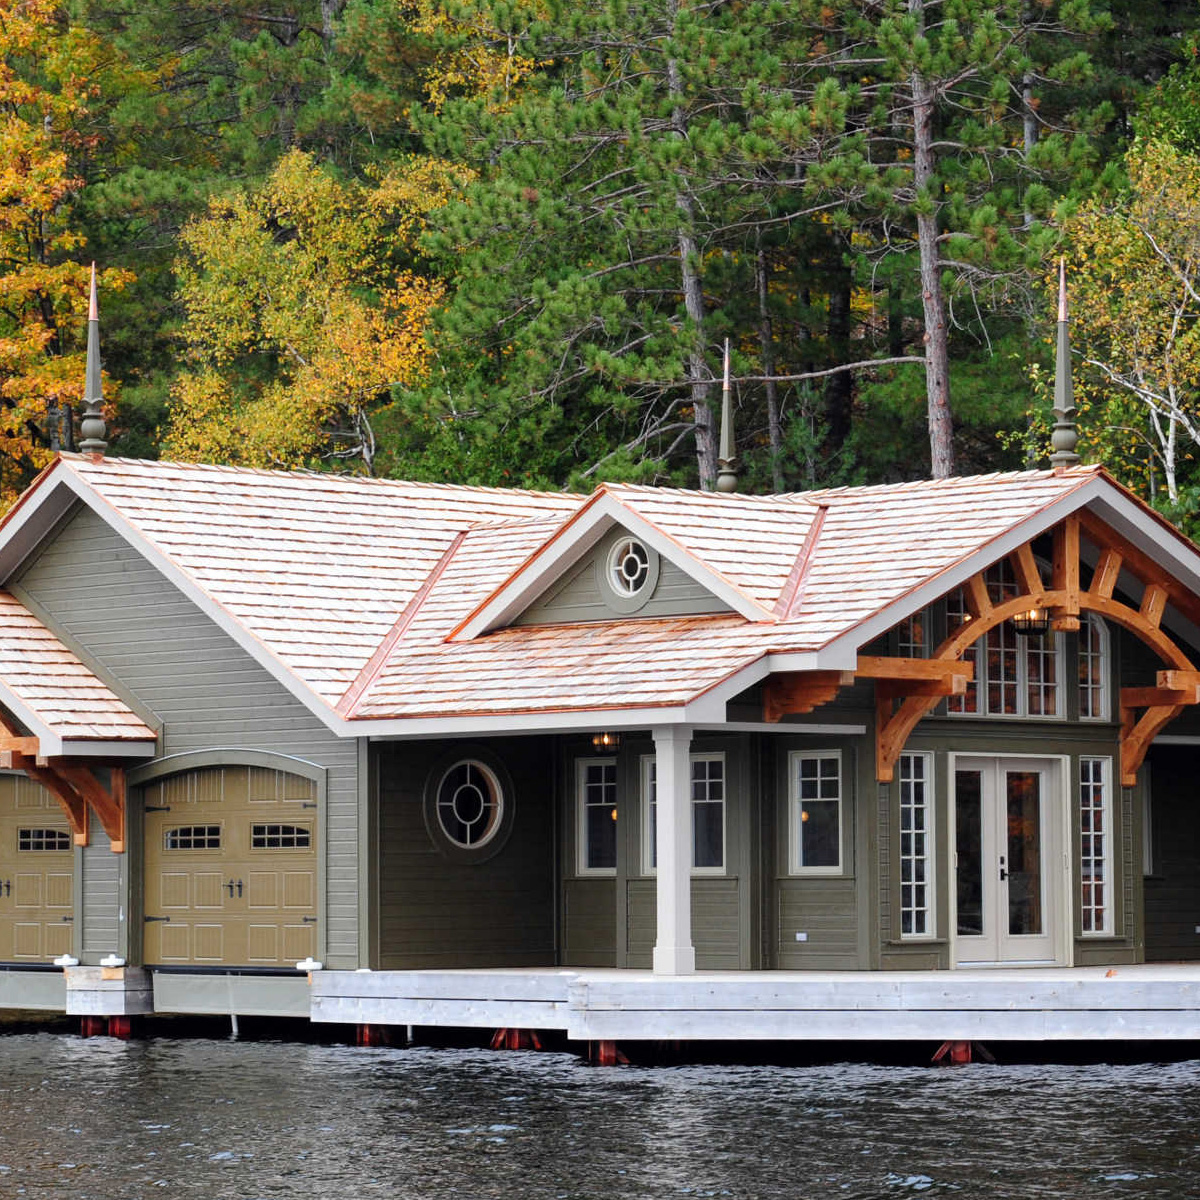 Muskoka Boathouse construction